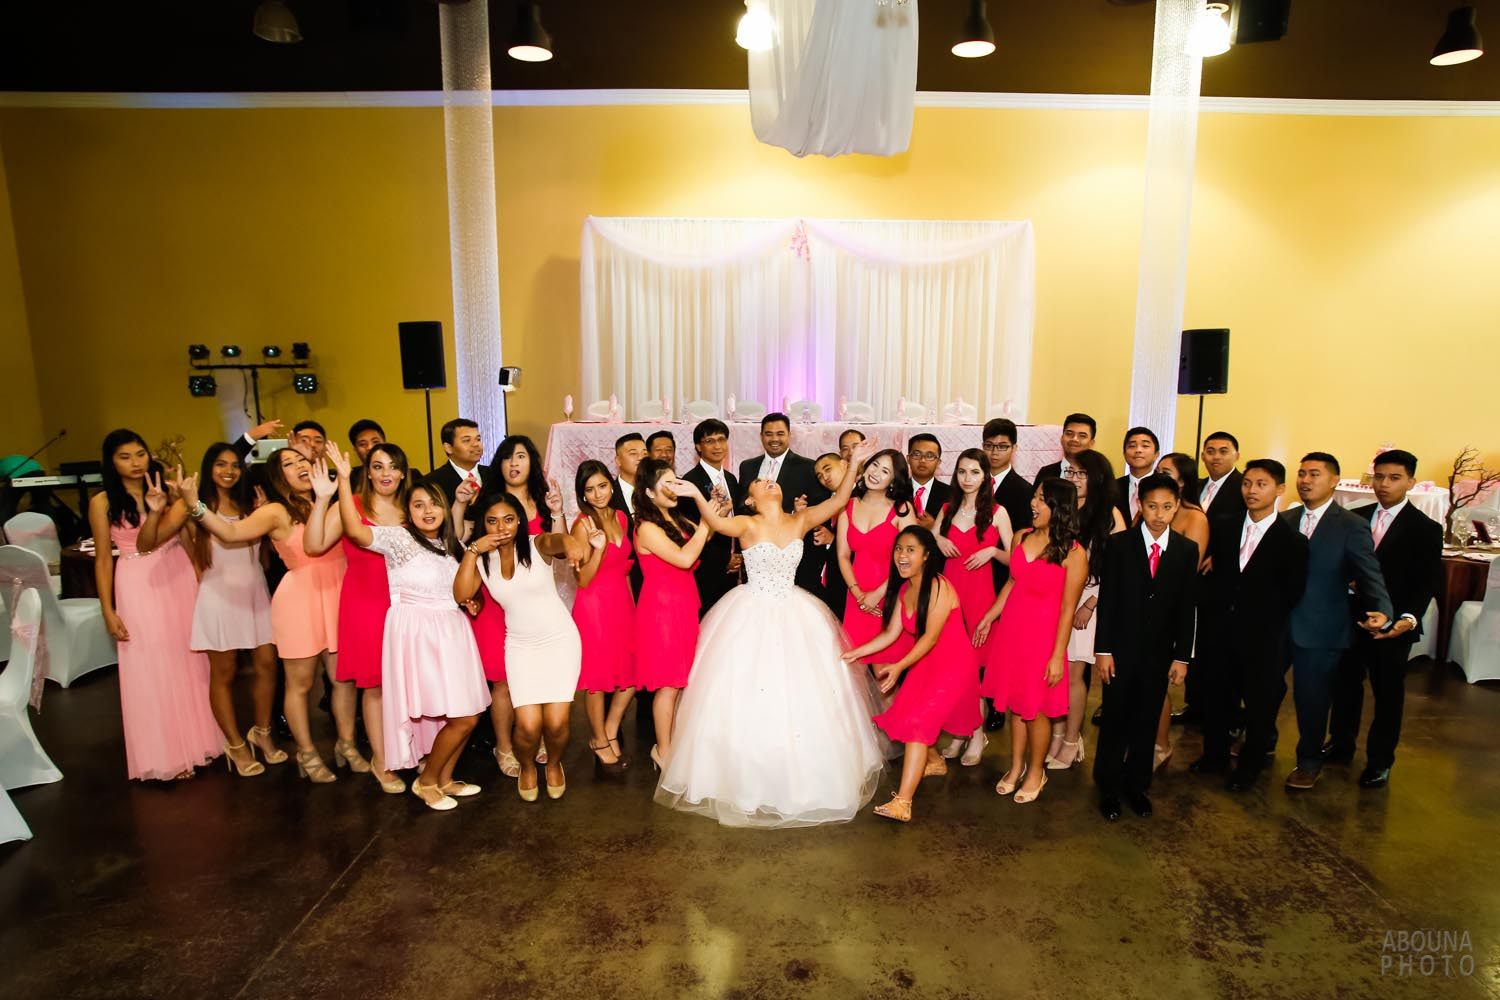 18th birthday party of a debutante